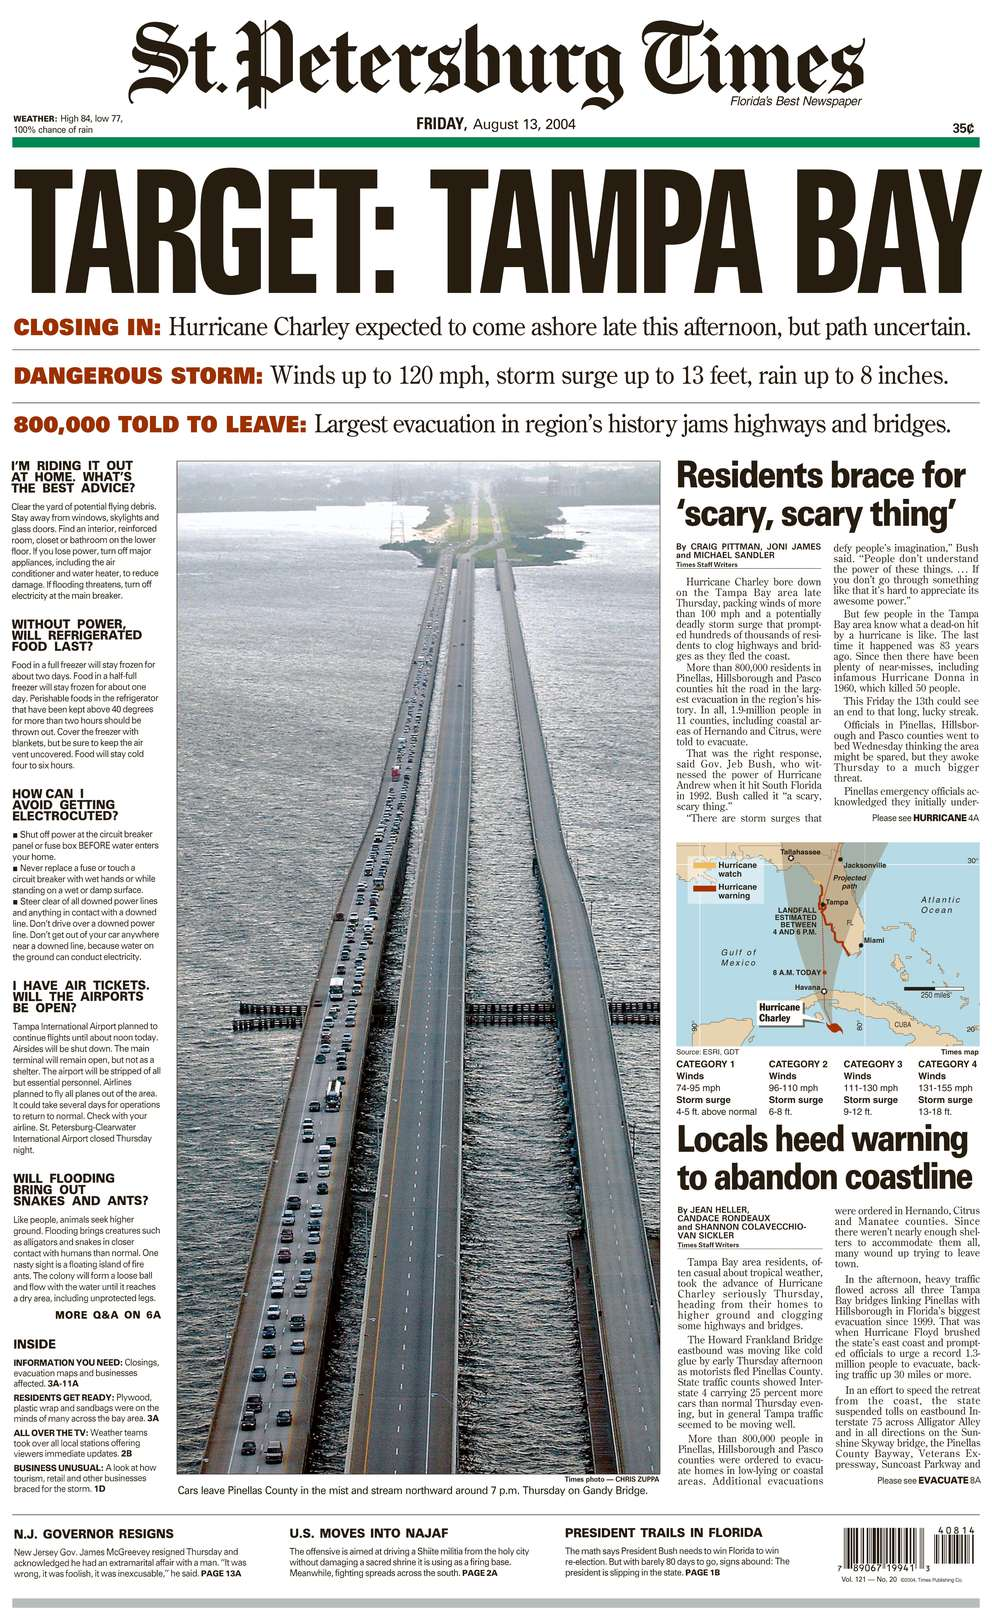 The front page of the St. Petersburg Times for August 13, 2004, featuring coverage of Hurricane Charley.